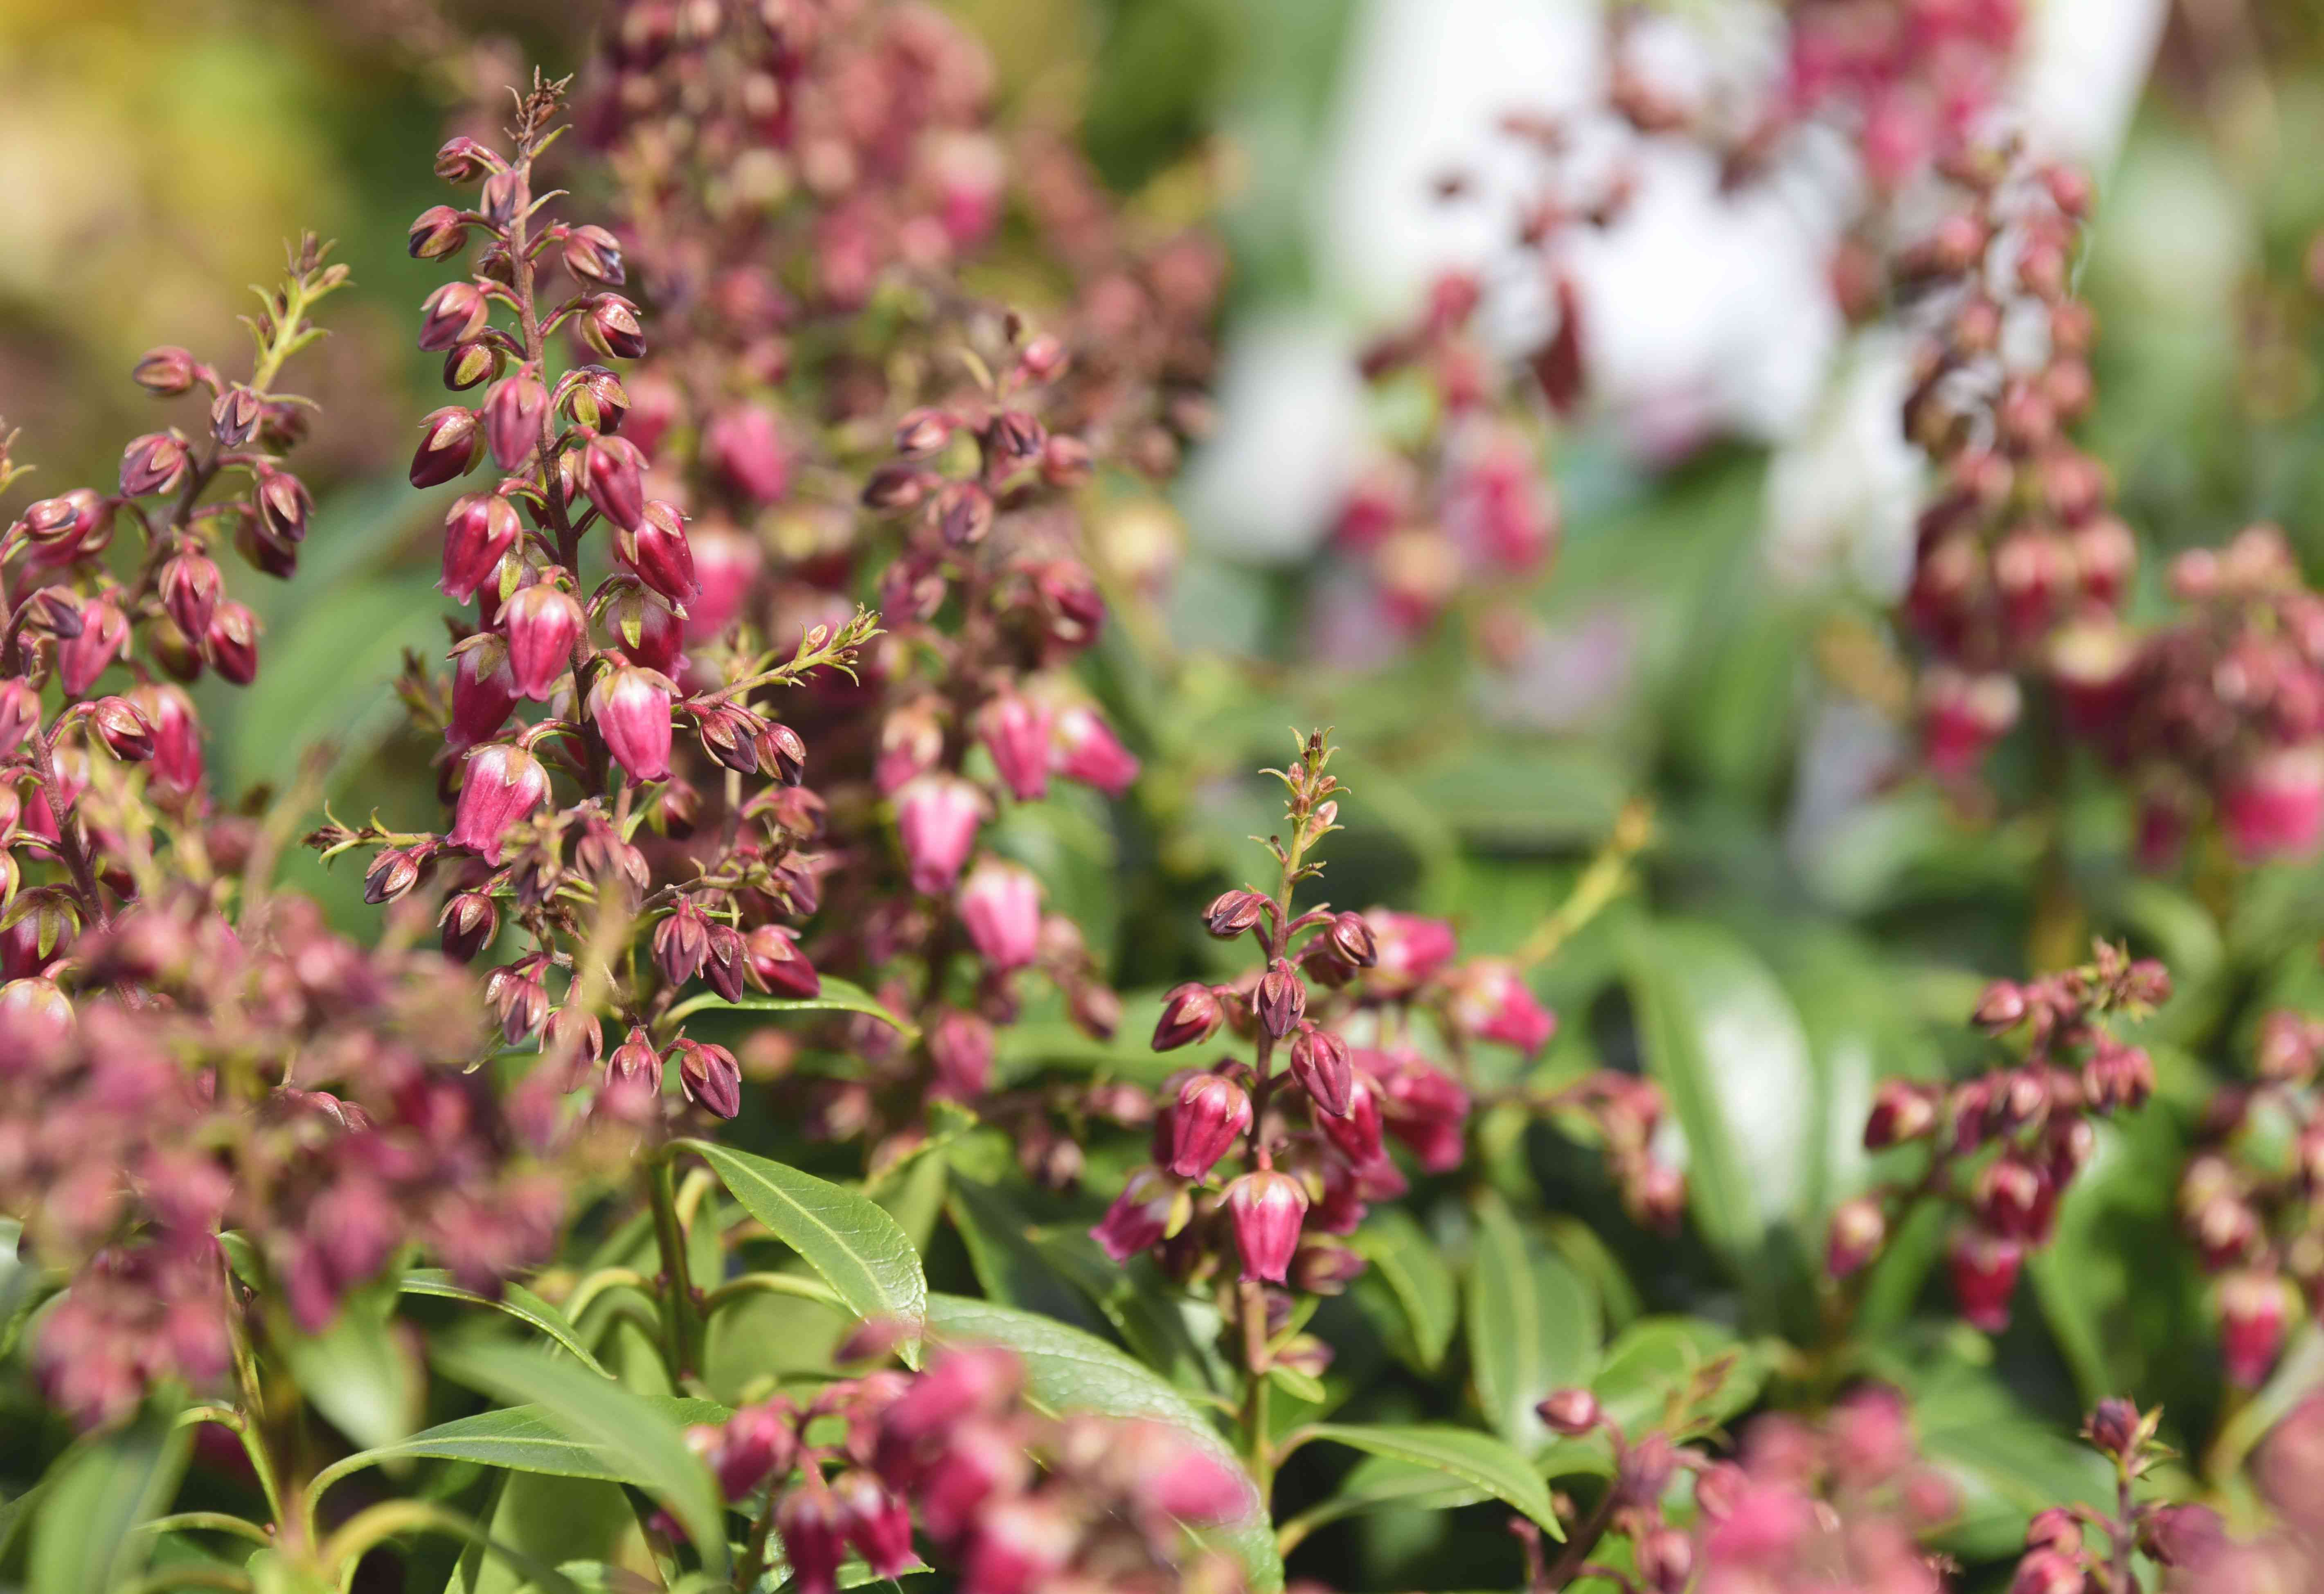 Andromeda shrub stems with small pink blooms on flower spikes closeup